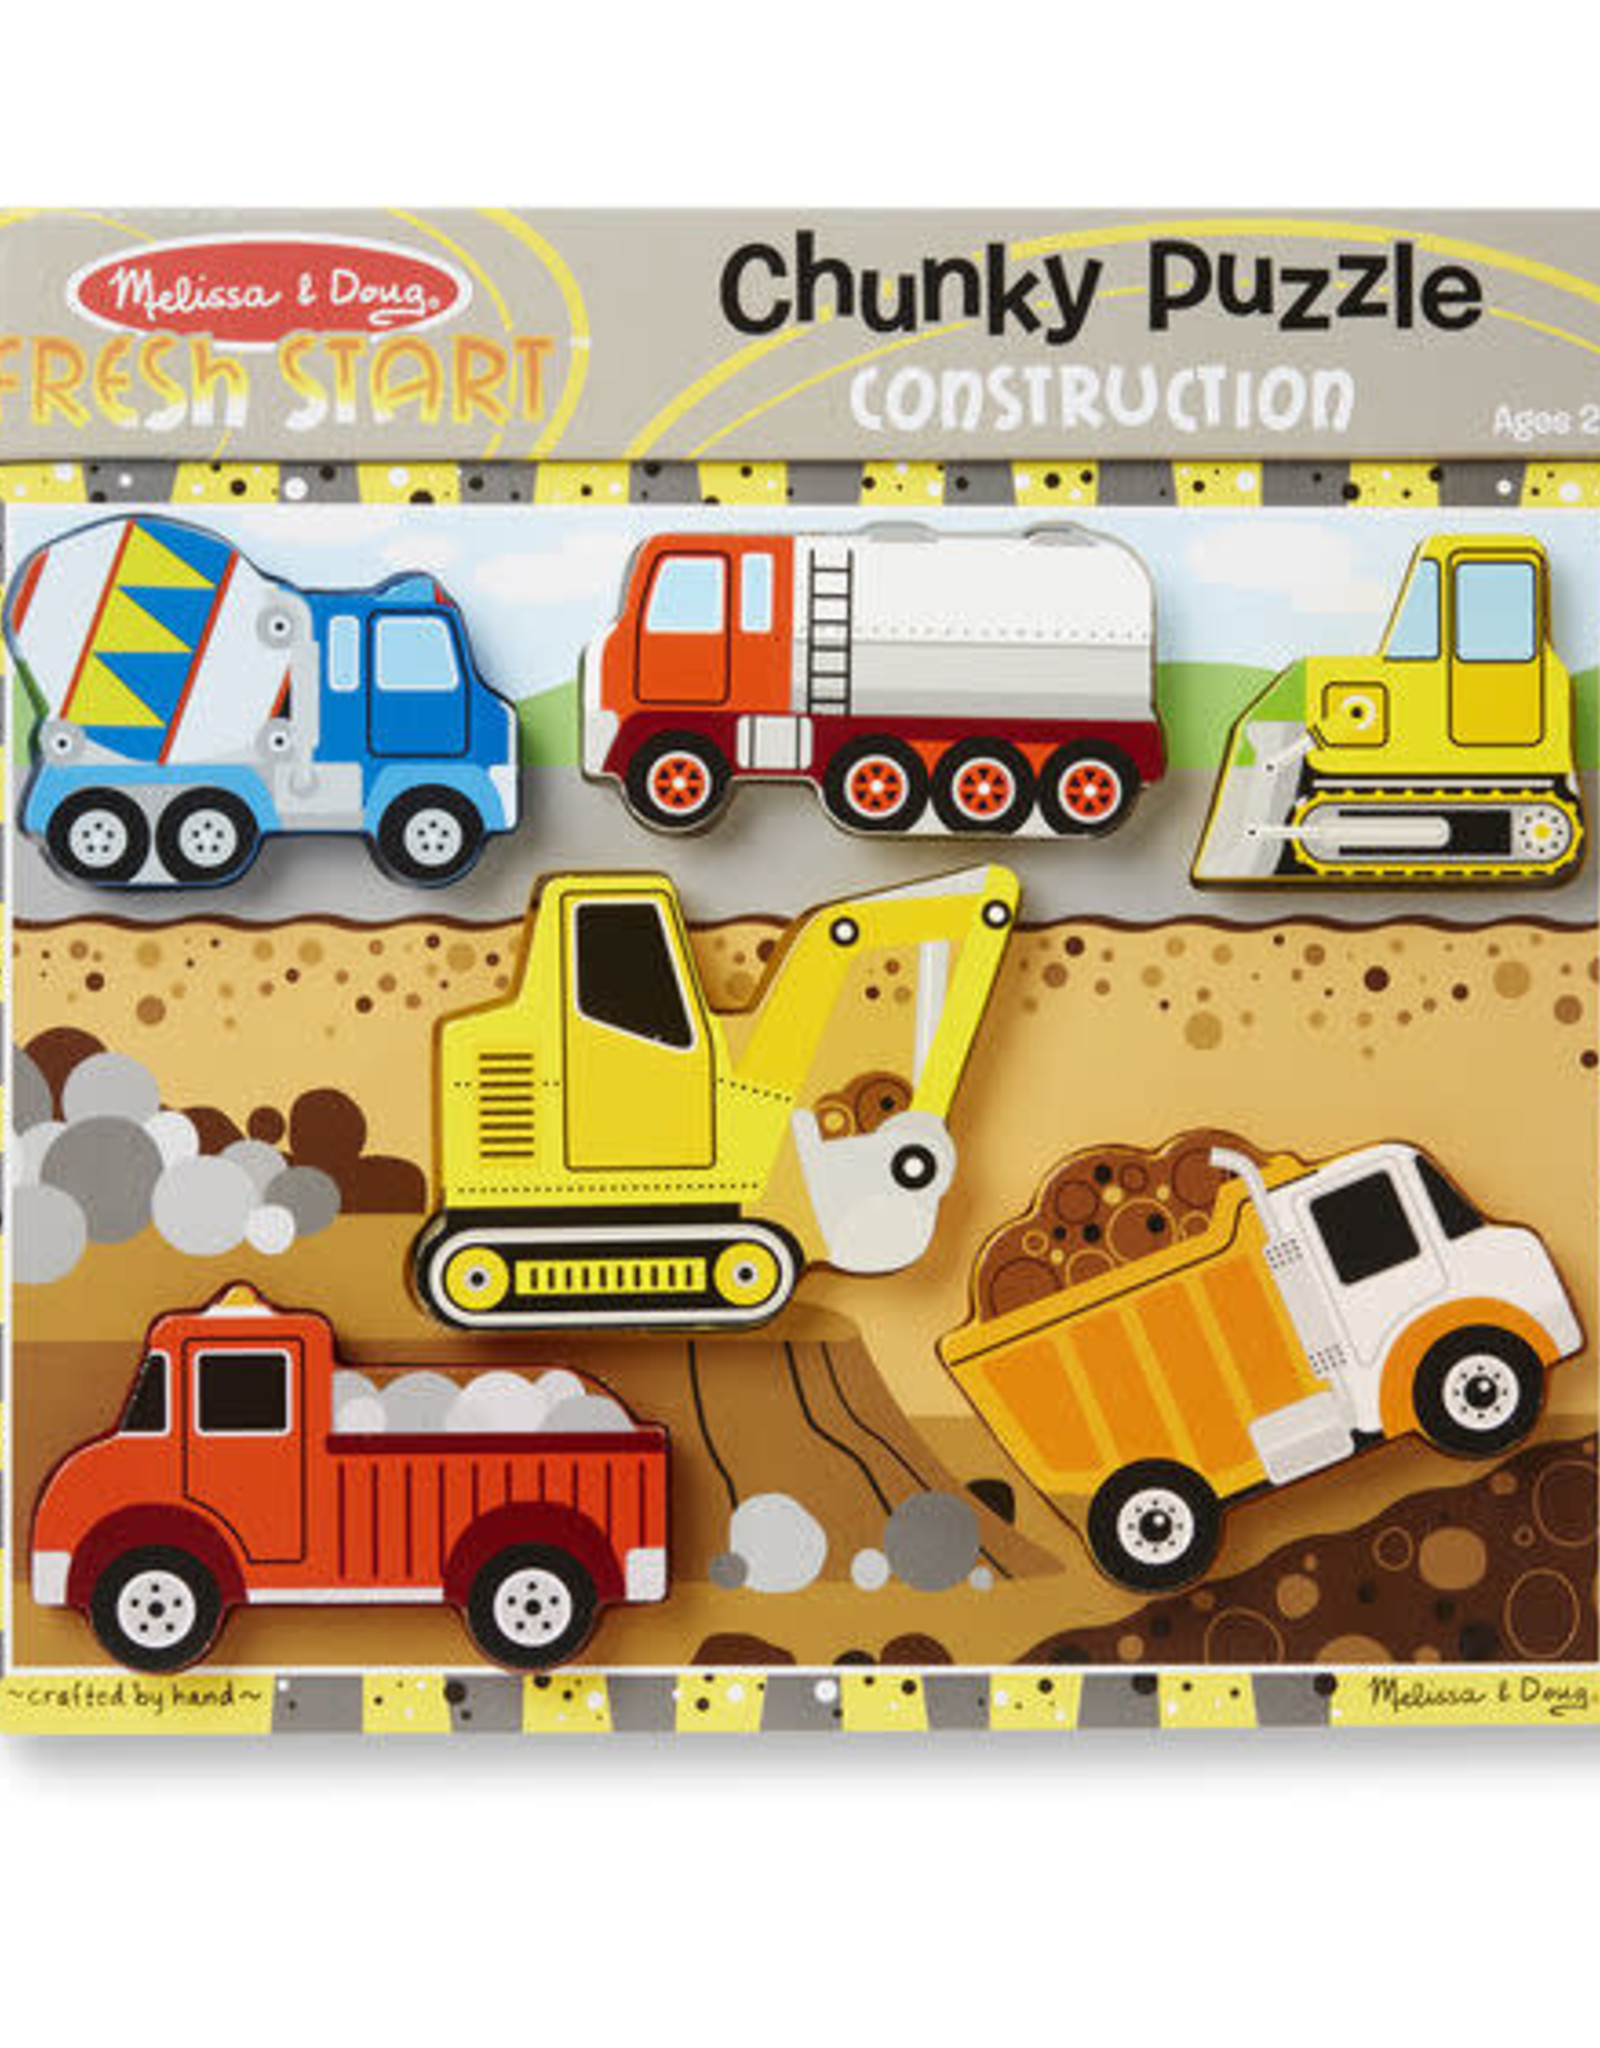 Melissa & Doug MD Chunky Puzzle Construction